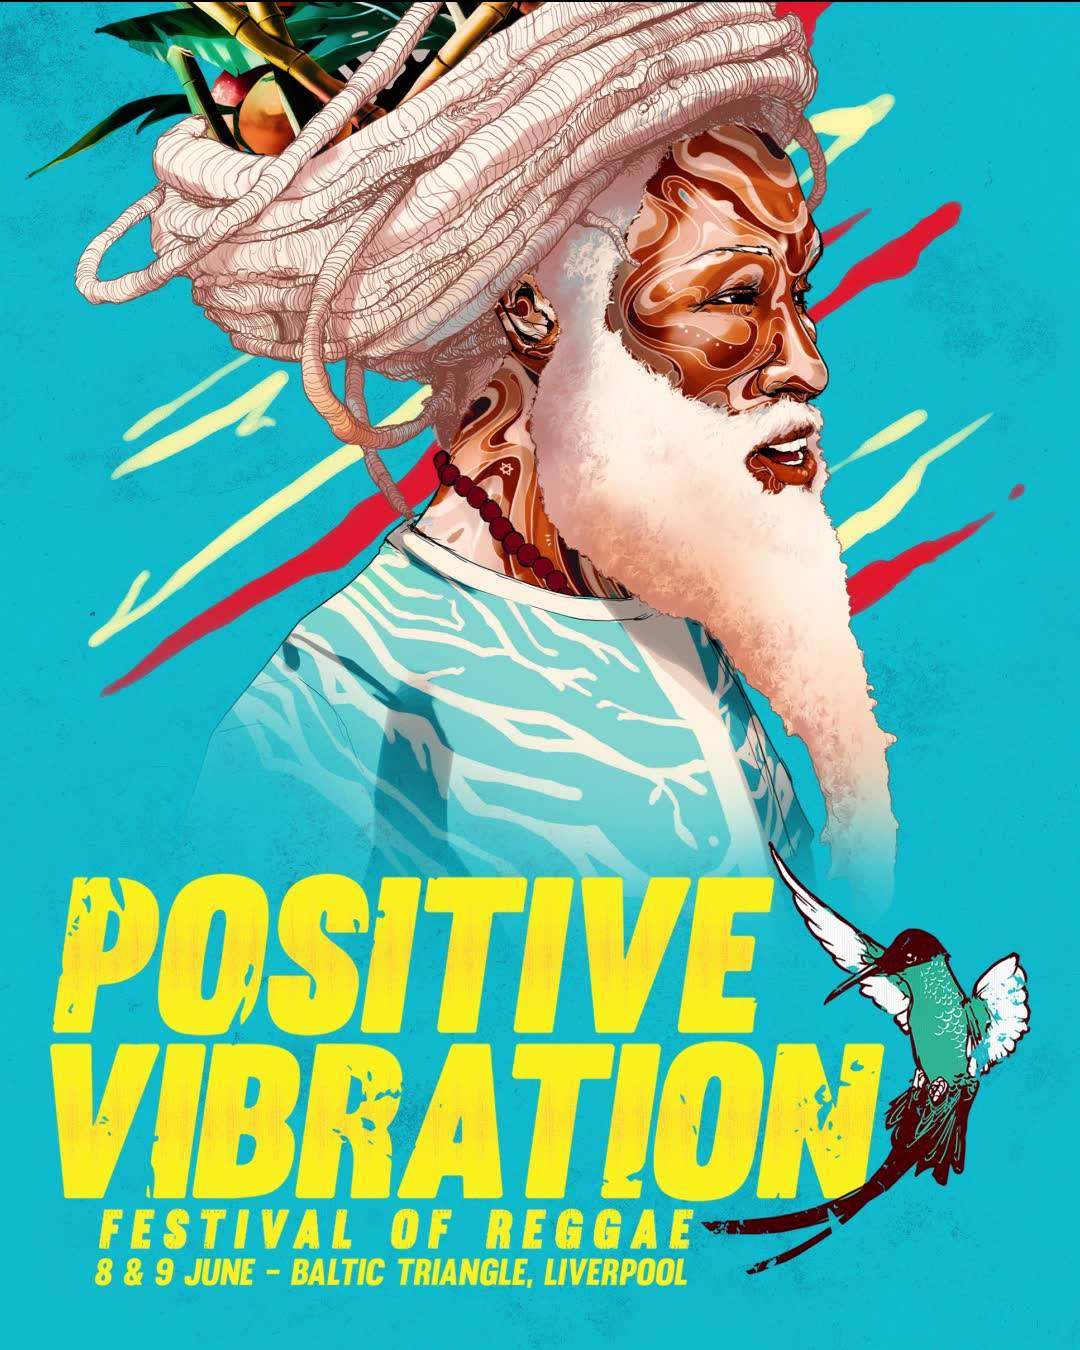 Africa Oye Festival news: MEGA happy to reveal the artwork for this year's Positive Vibration festival pos…